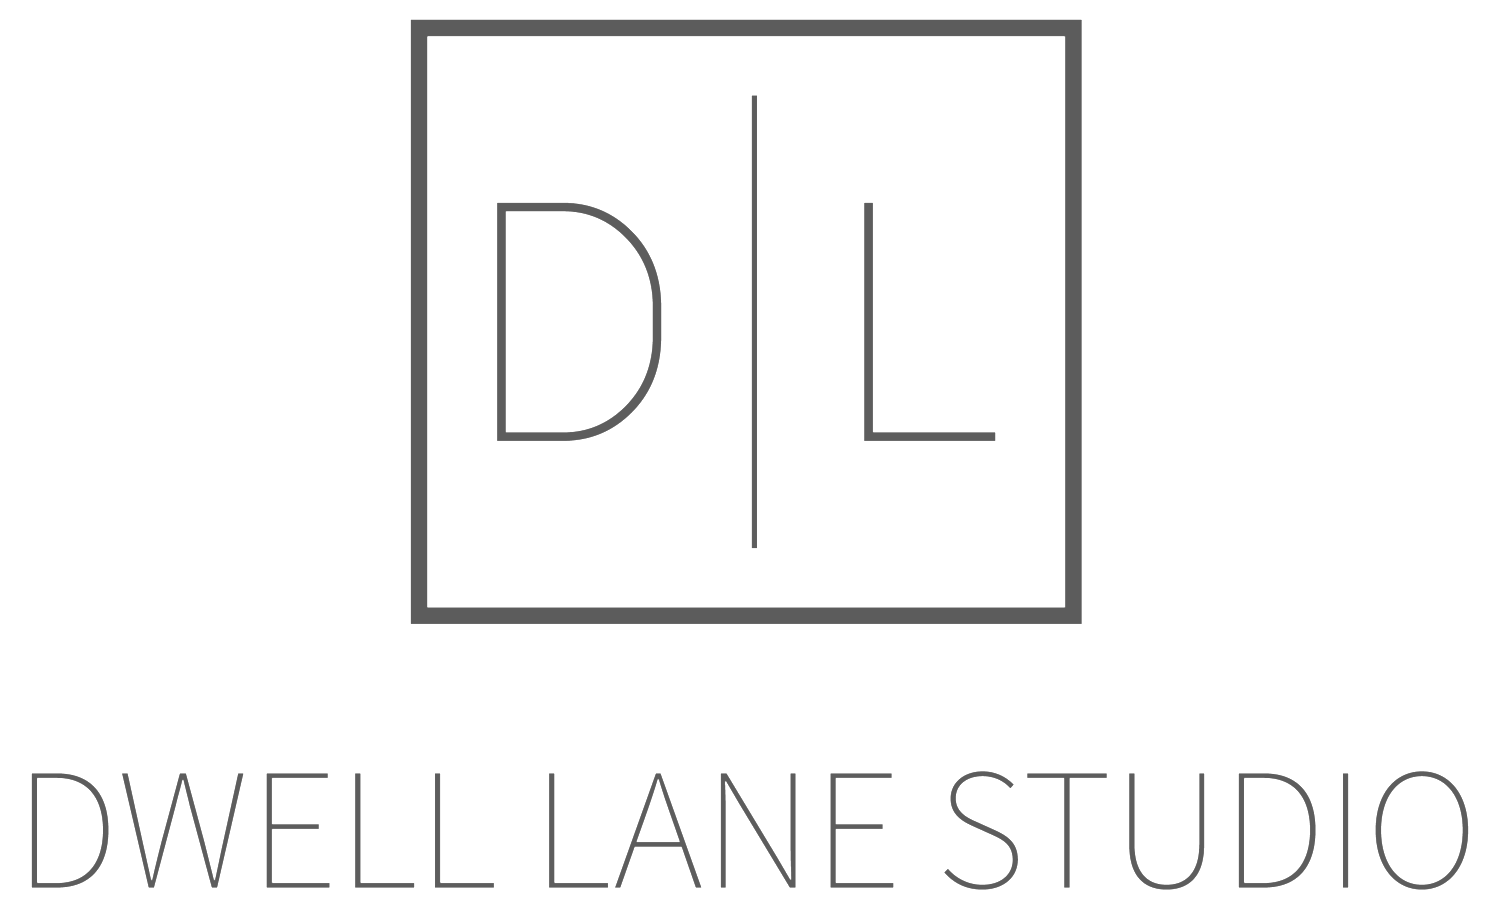 Dwell Lane Studio